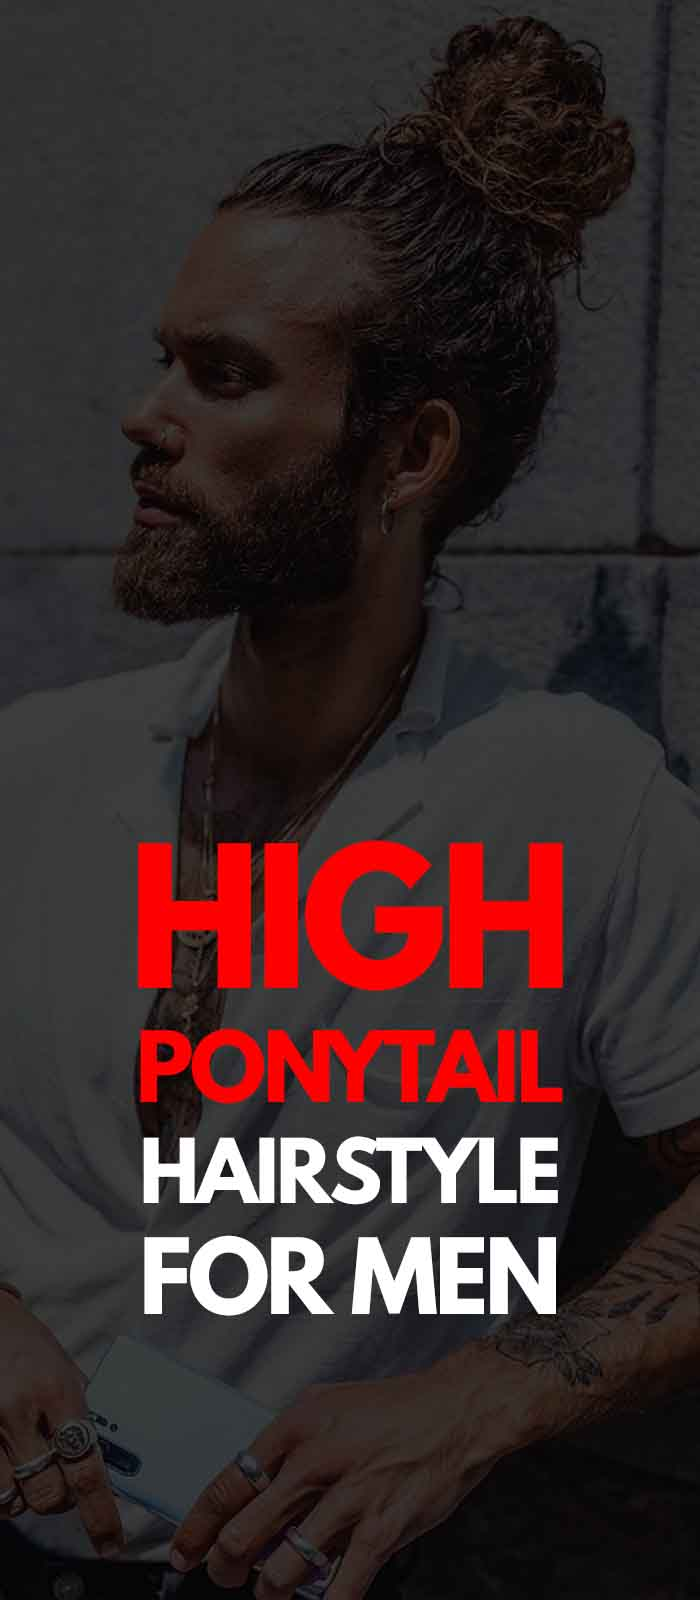 How To Get High Ponytail.